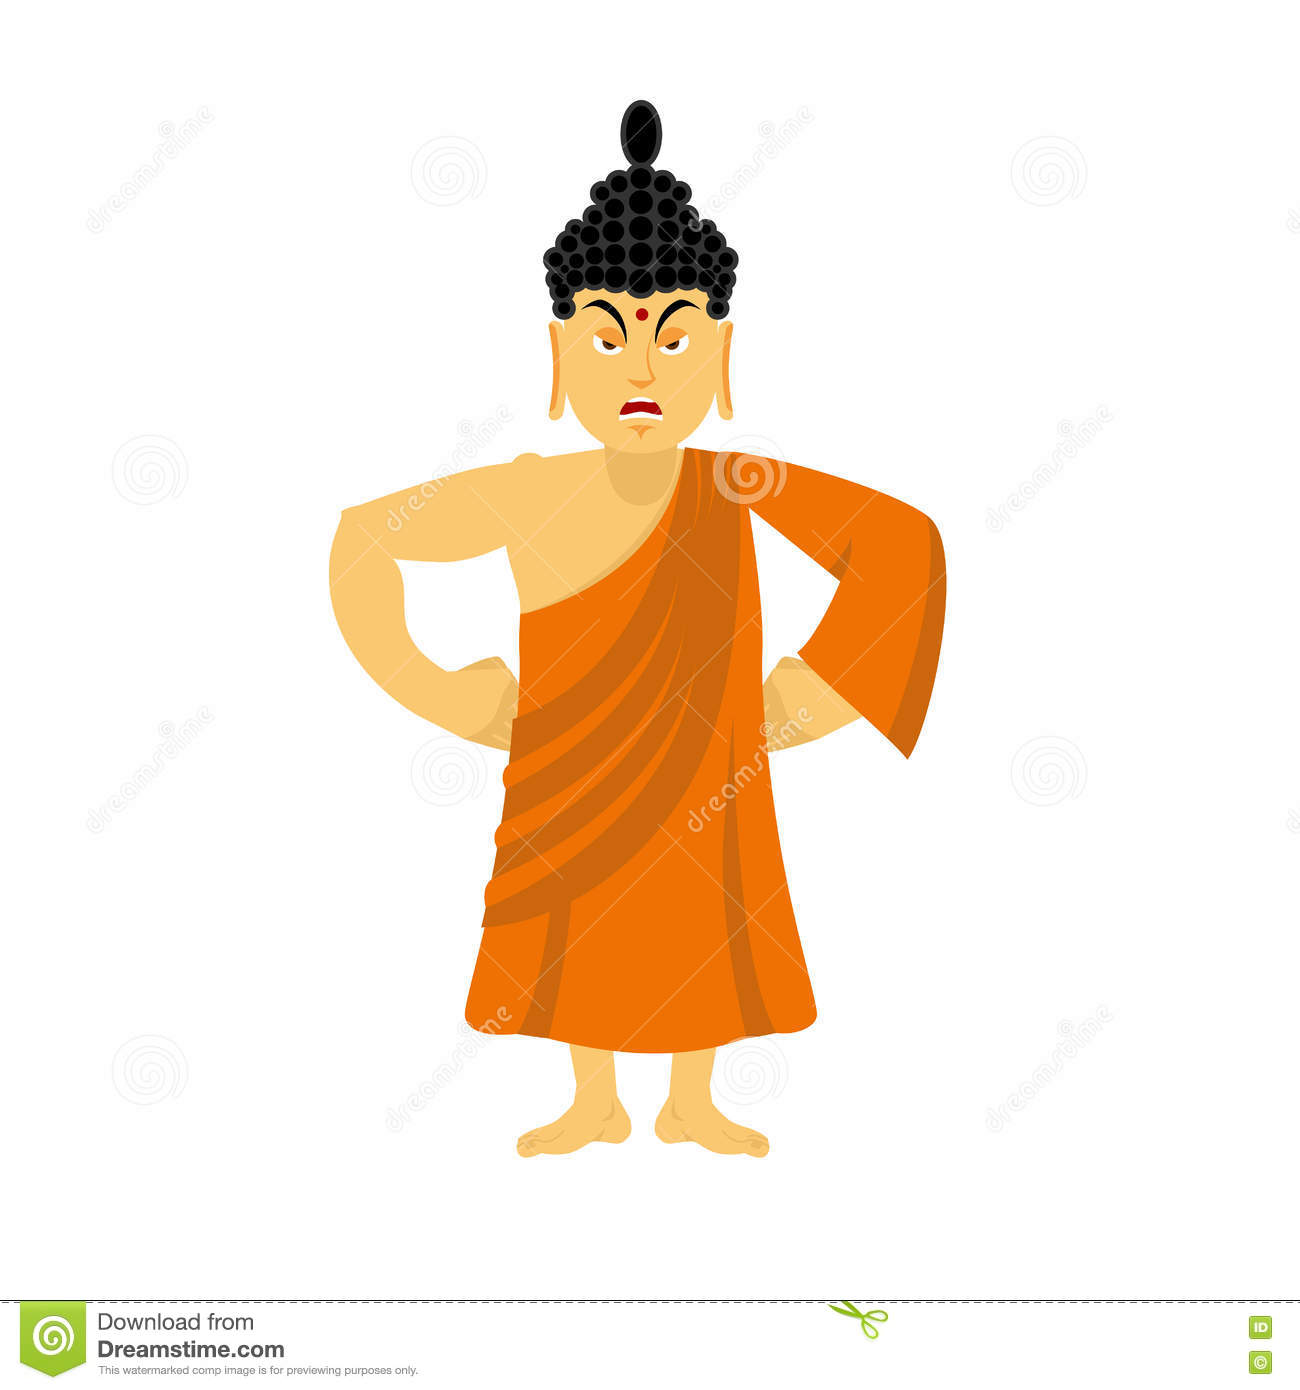 ravia buddhist single men 4 things you should know if you want to be a buddhist monk  leaving everything behind and become a buddhist monk  sri lanka 40 years old single guy.